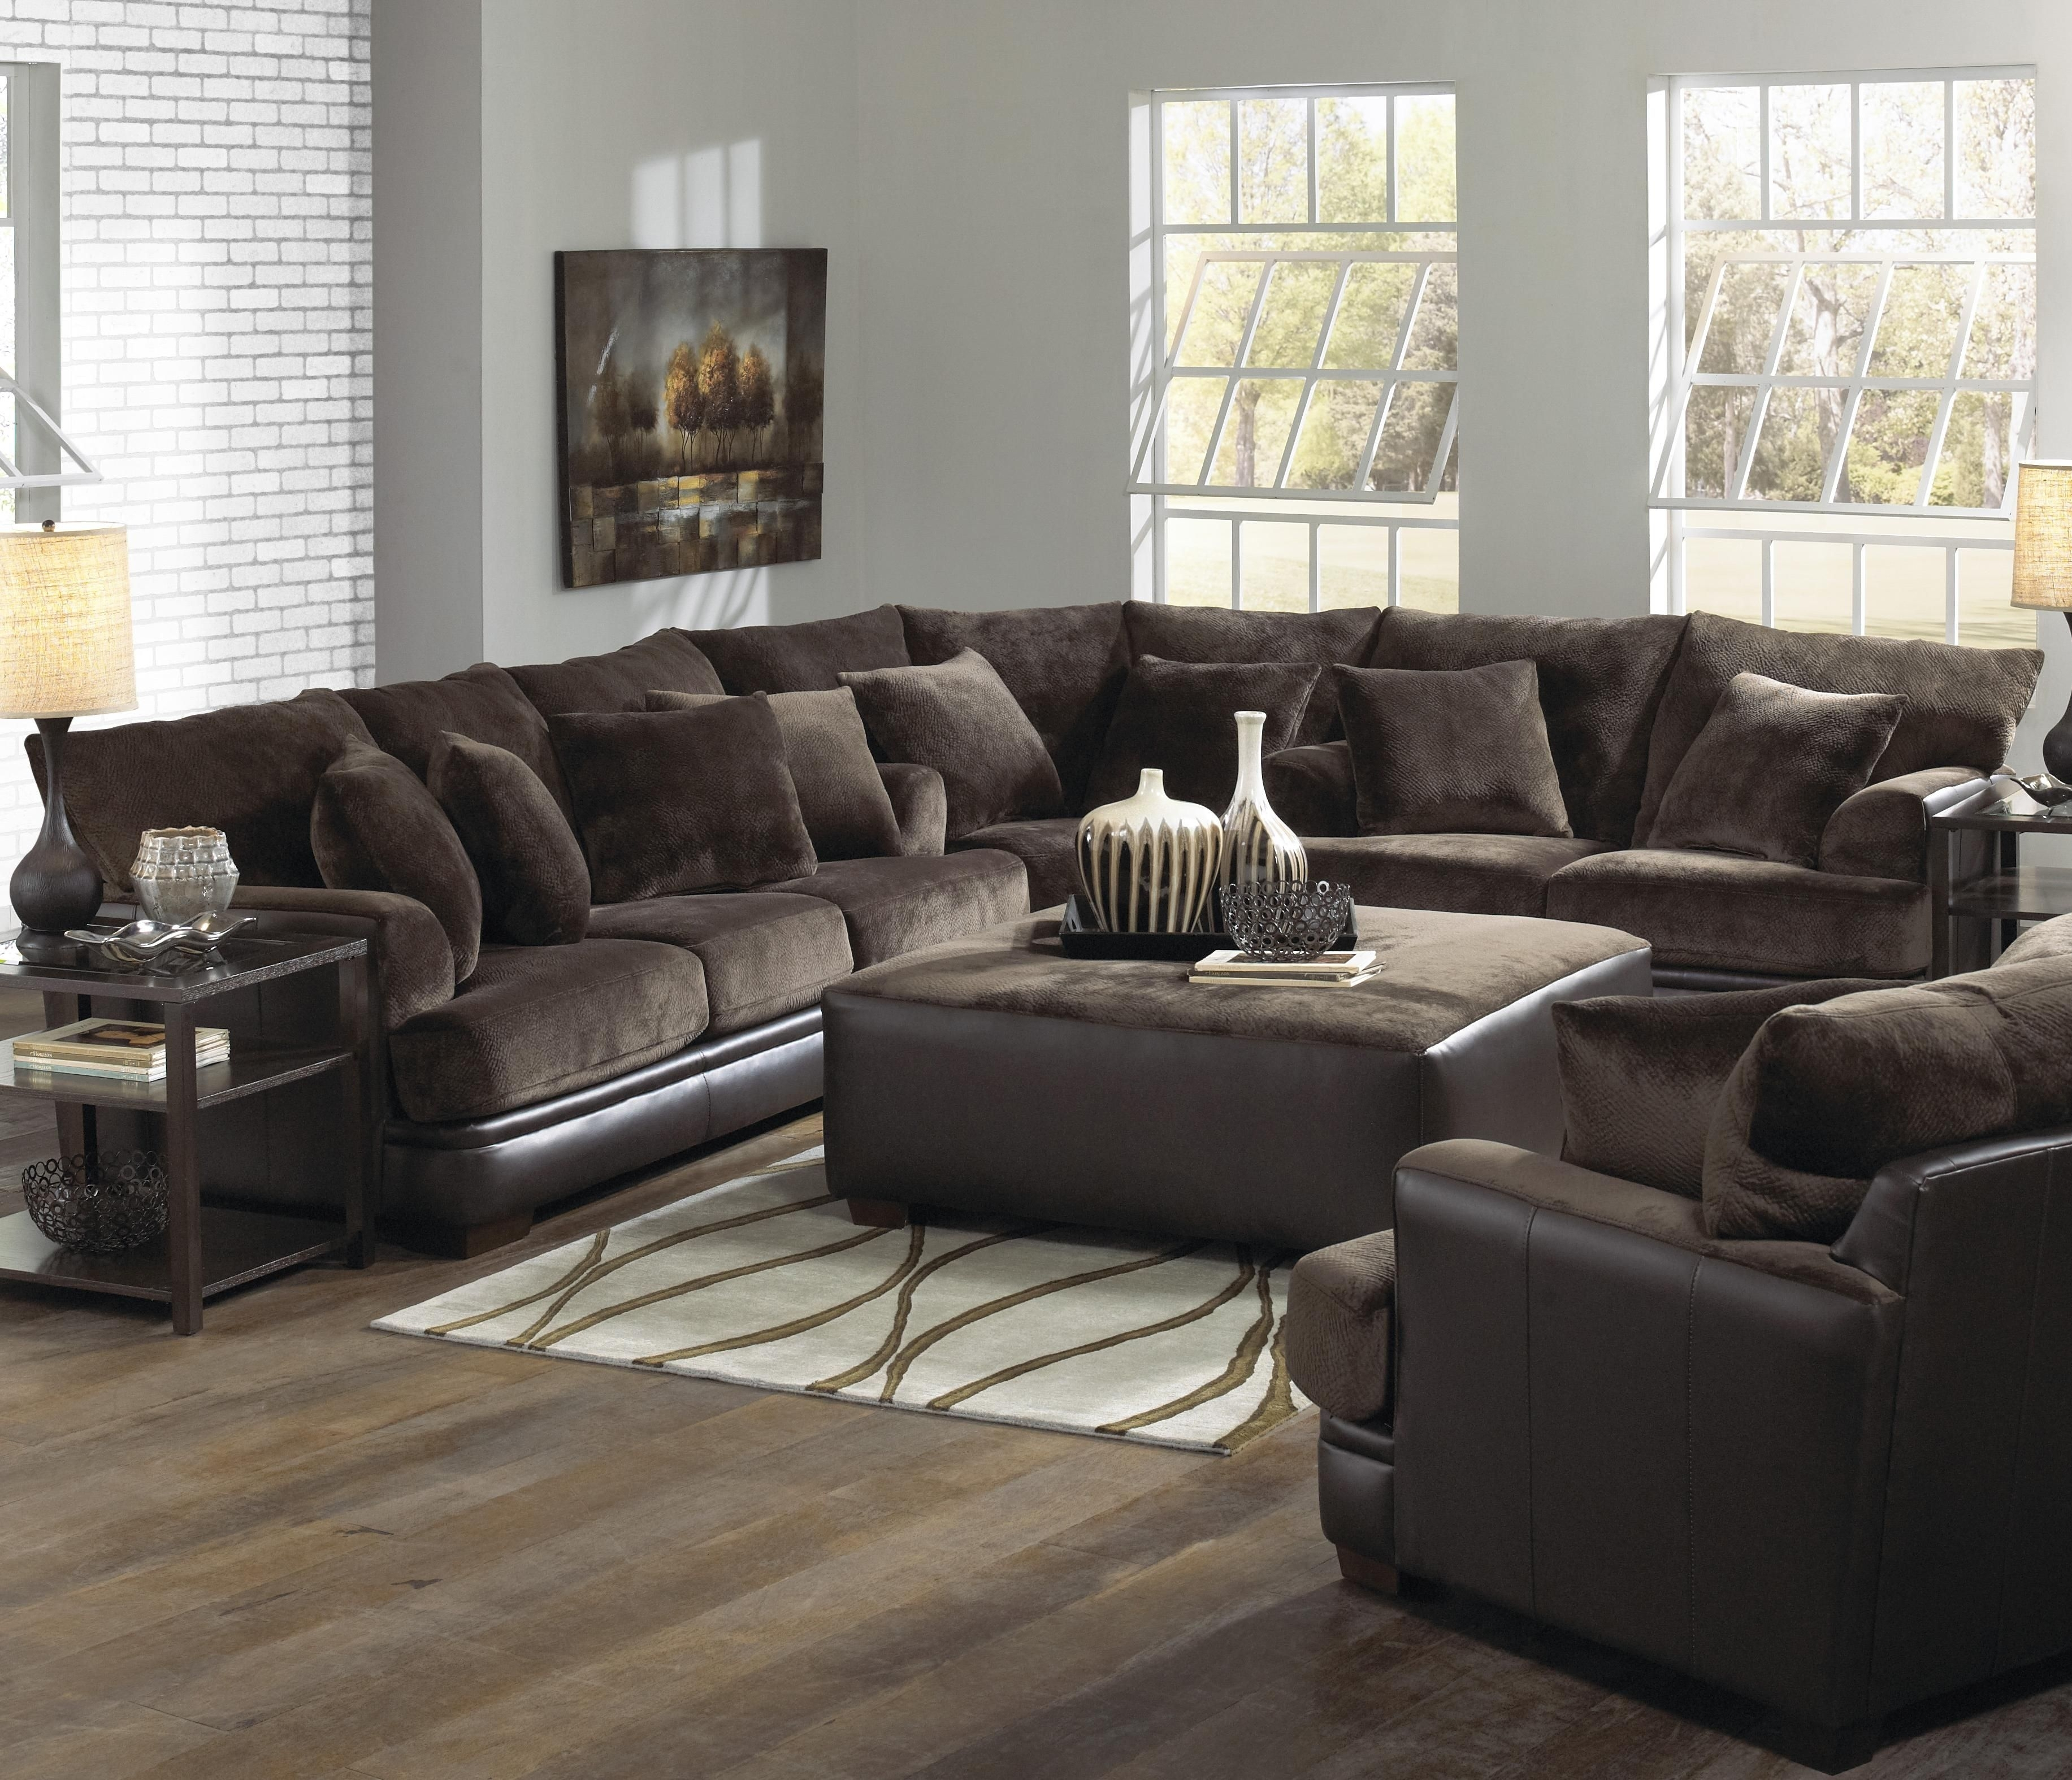 Furniture. Dark Brown Velvet Couch Plus Black Leather Base Also intended for Declan 3 Piece Power Reclining Sectionals With Right Facing Console Loveseat (Image 17 of 30)